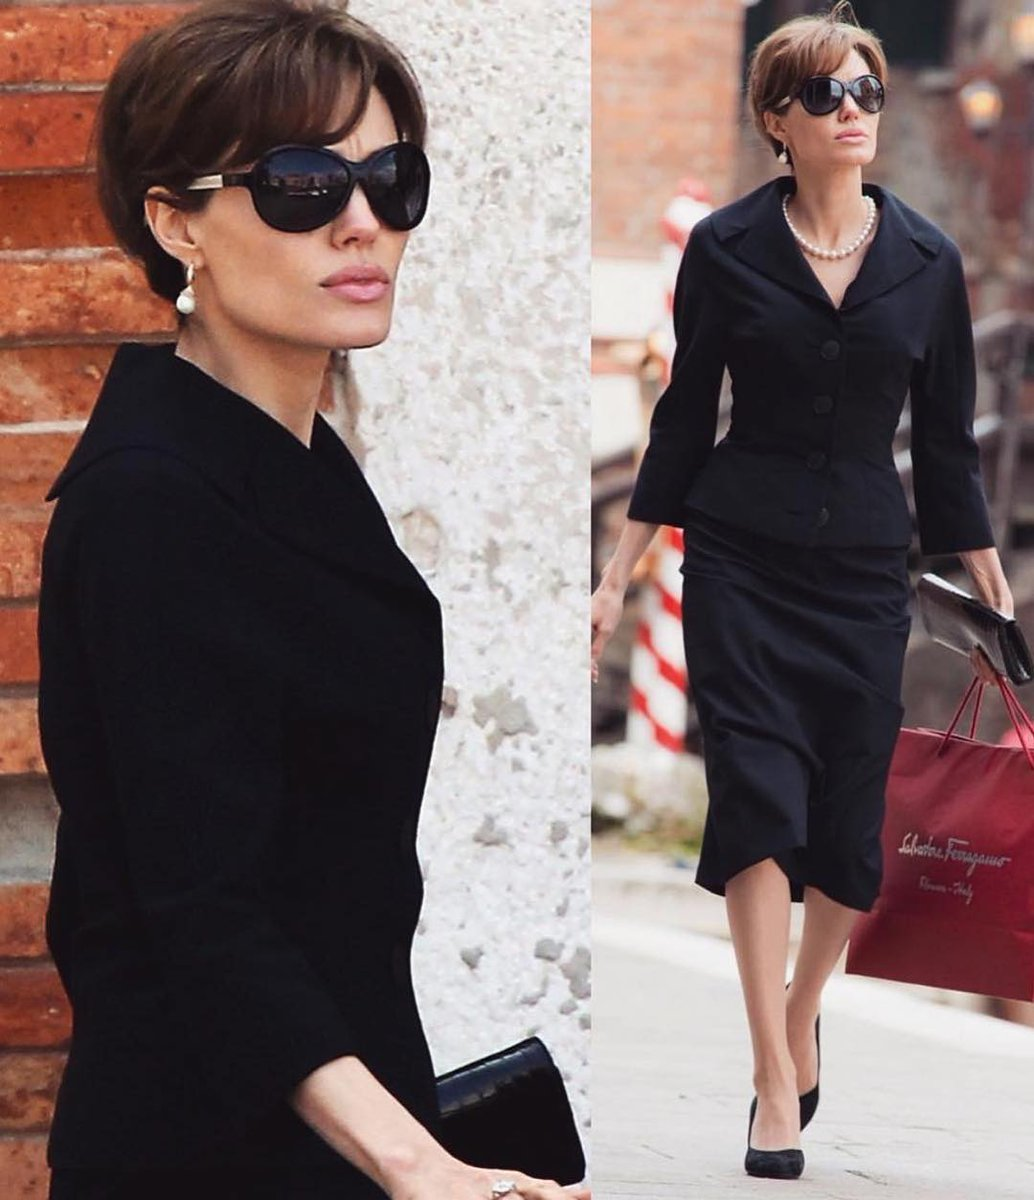 Just wanna take a minute and appreciate how chic Angelina Jolie looked in the Tourist movie <br>http://pic.twitter.com/r7f4MG3Fn2